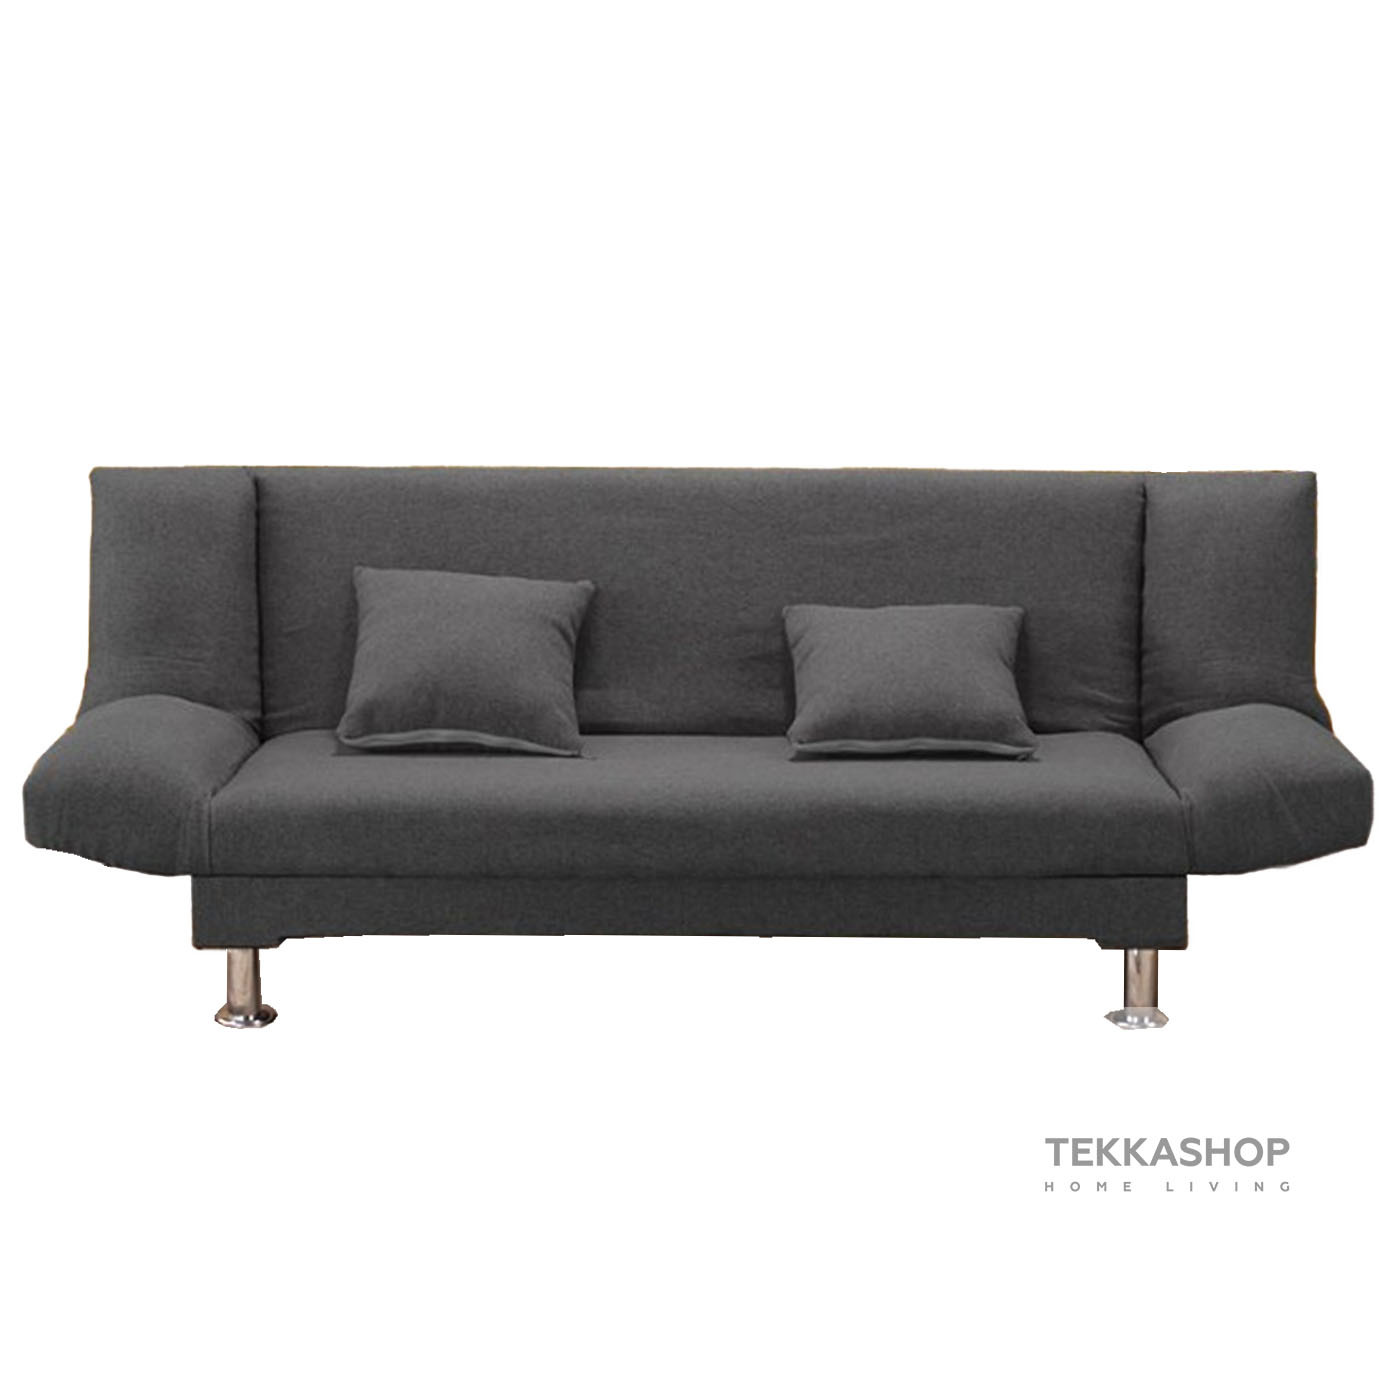 foldable sofa chair malaysia coleman chairs walmart tekkashop gdsb1628g 4 seater living room bed